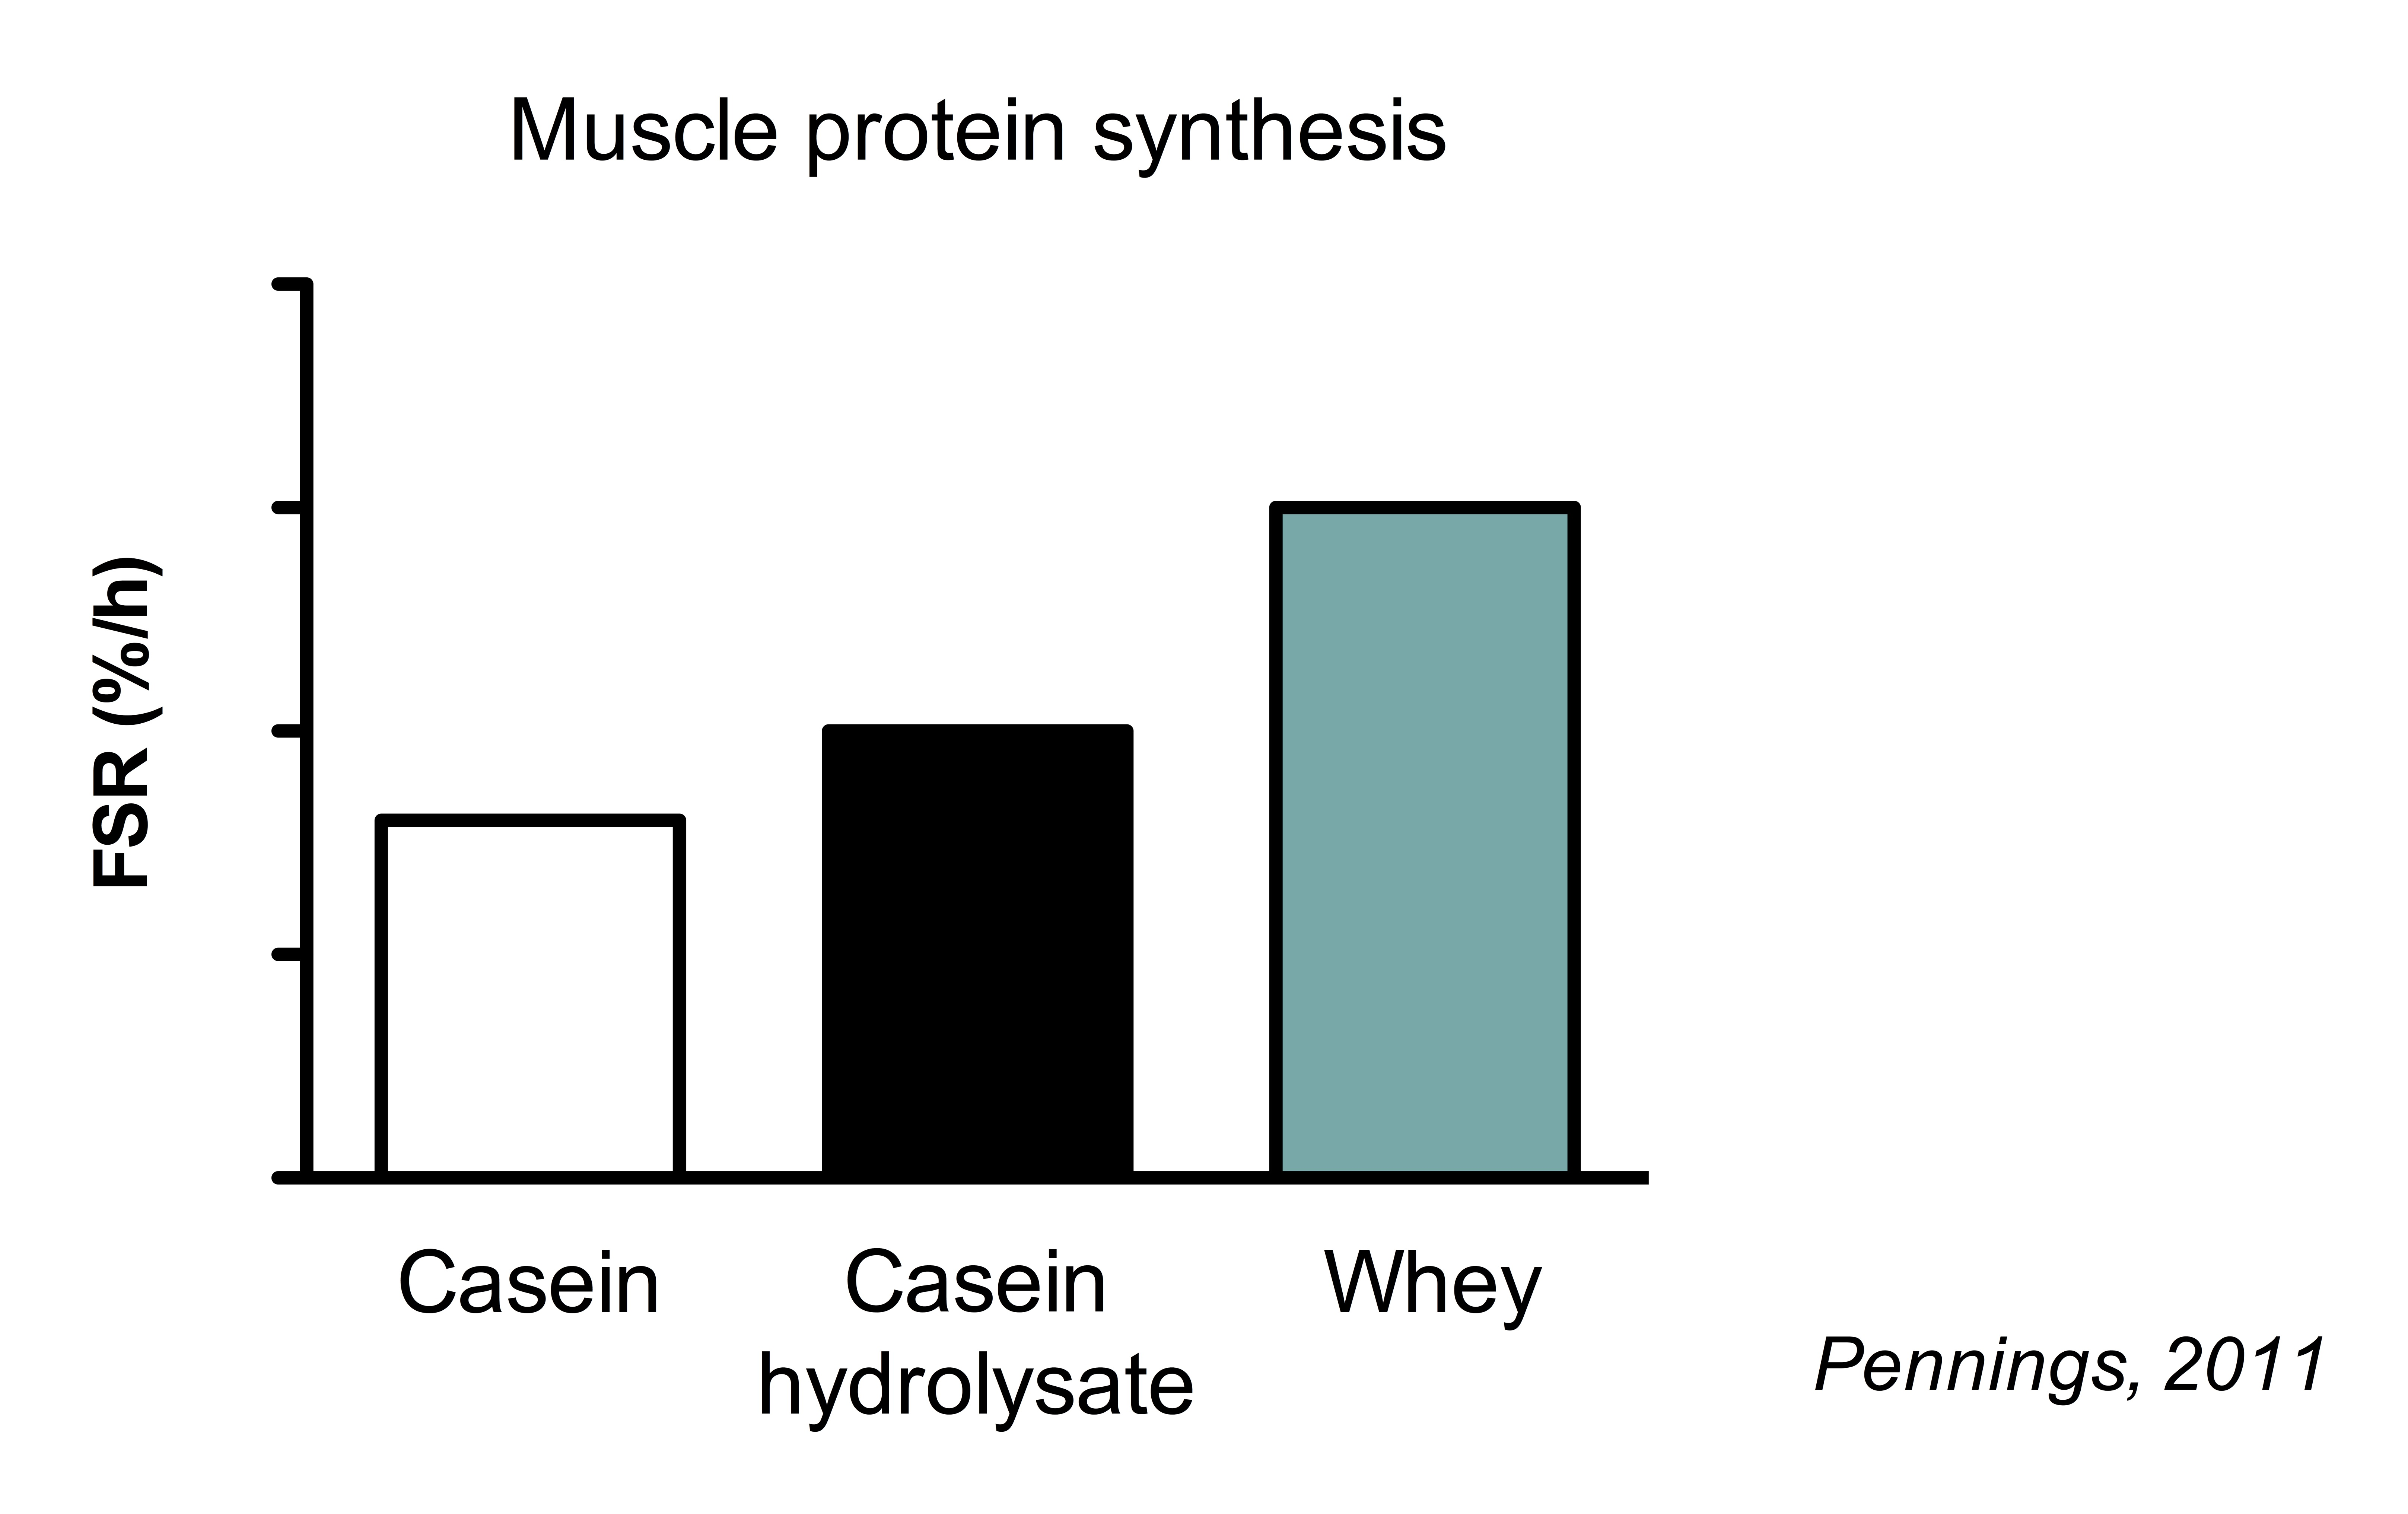 BENEFITS AND USE OF WHEY PROTEIN